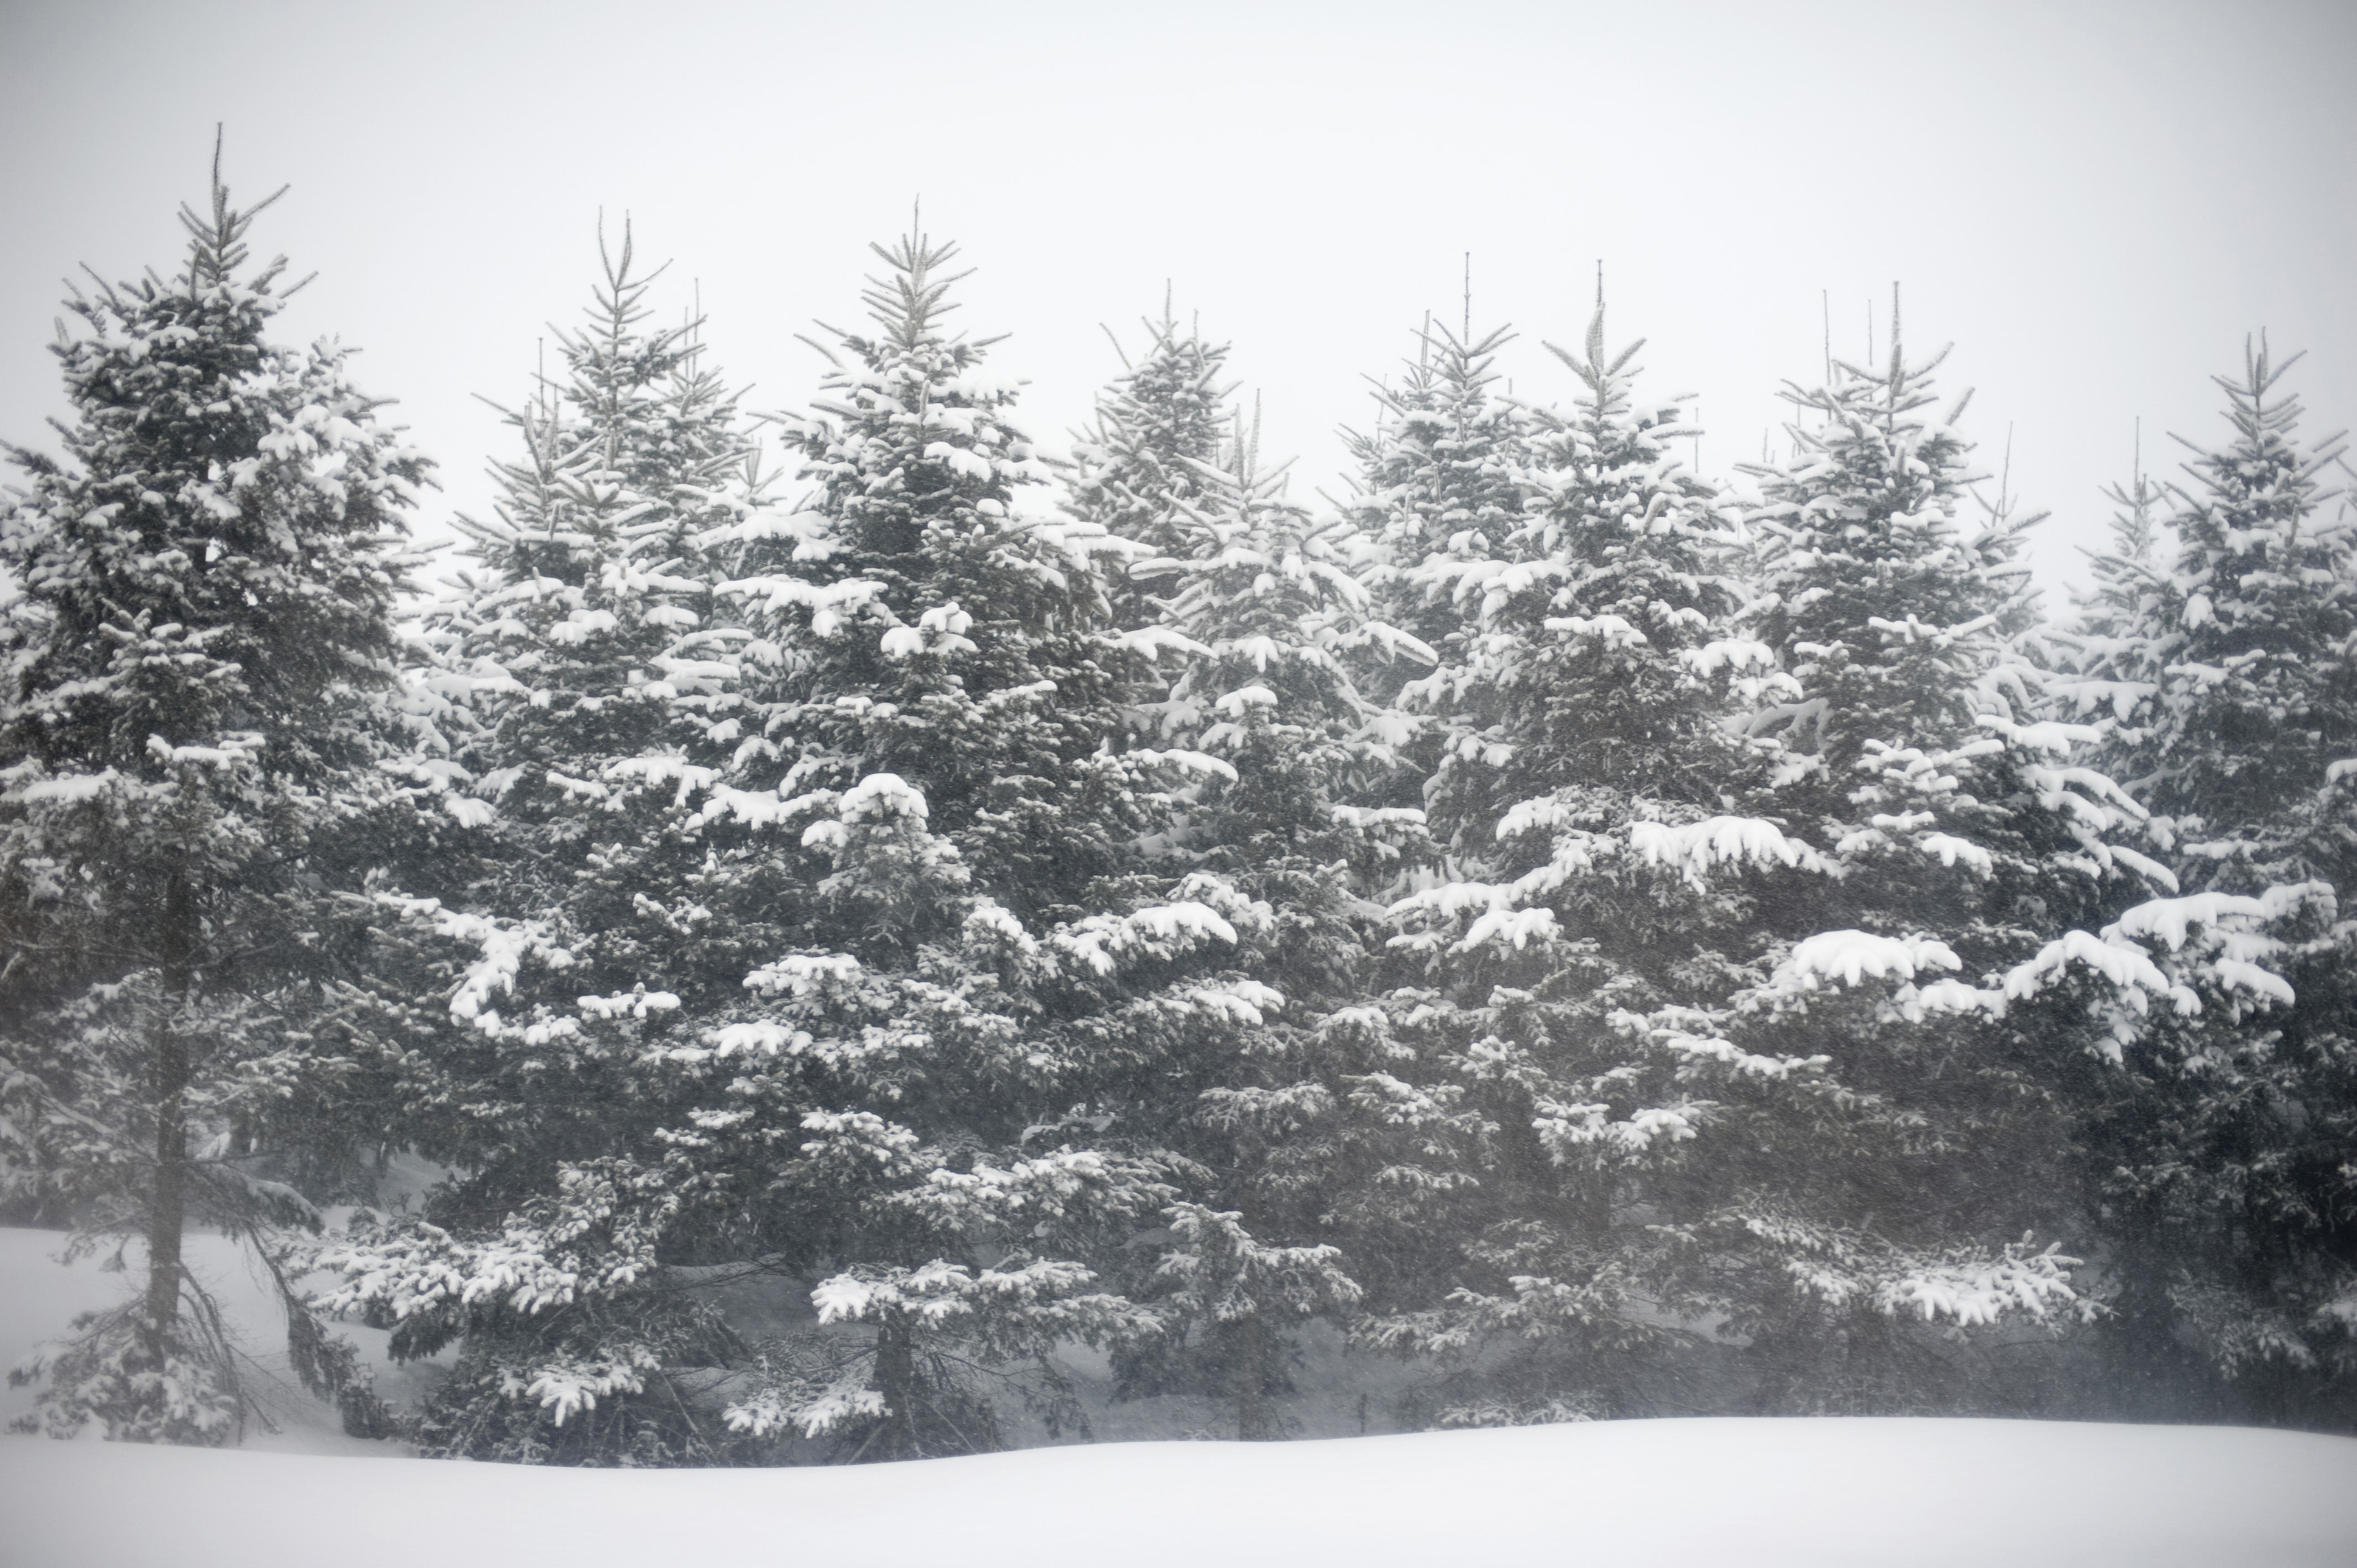 Free stock photo 5972 winter wonderland freeimageslive - Images of pine trees in snow ...